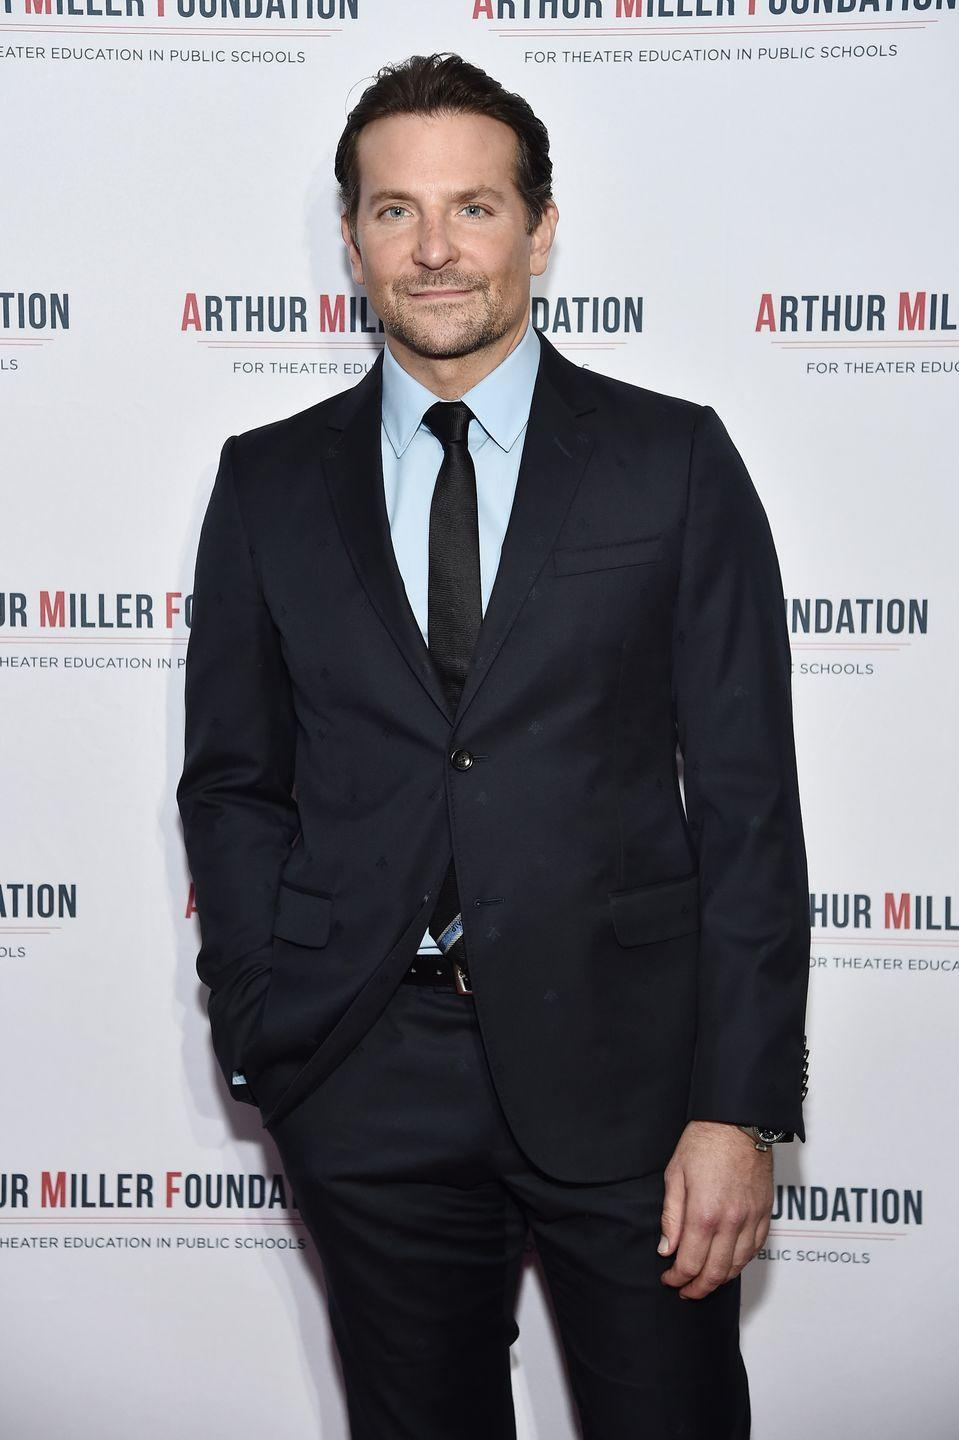 """<p>If you hadn't pegged him for an athlete, think again. Bradley Cooper <a href=""""https://www.esquire.com/news-politics/a10100/bradley-cooper-interview-0611/"""" rel=""""nofollow noopener"""" target=""""_blank"""" data-ylk=""""slk:rowed crew"""" class=""""link rapid-noclick-resp"""">rowed crew</a> while he was a student at Georgetown University. </p>"""